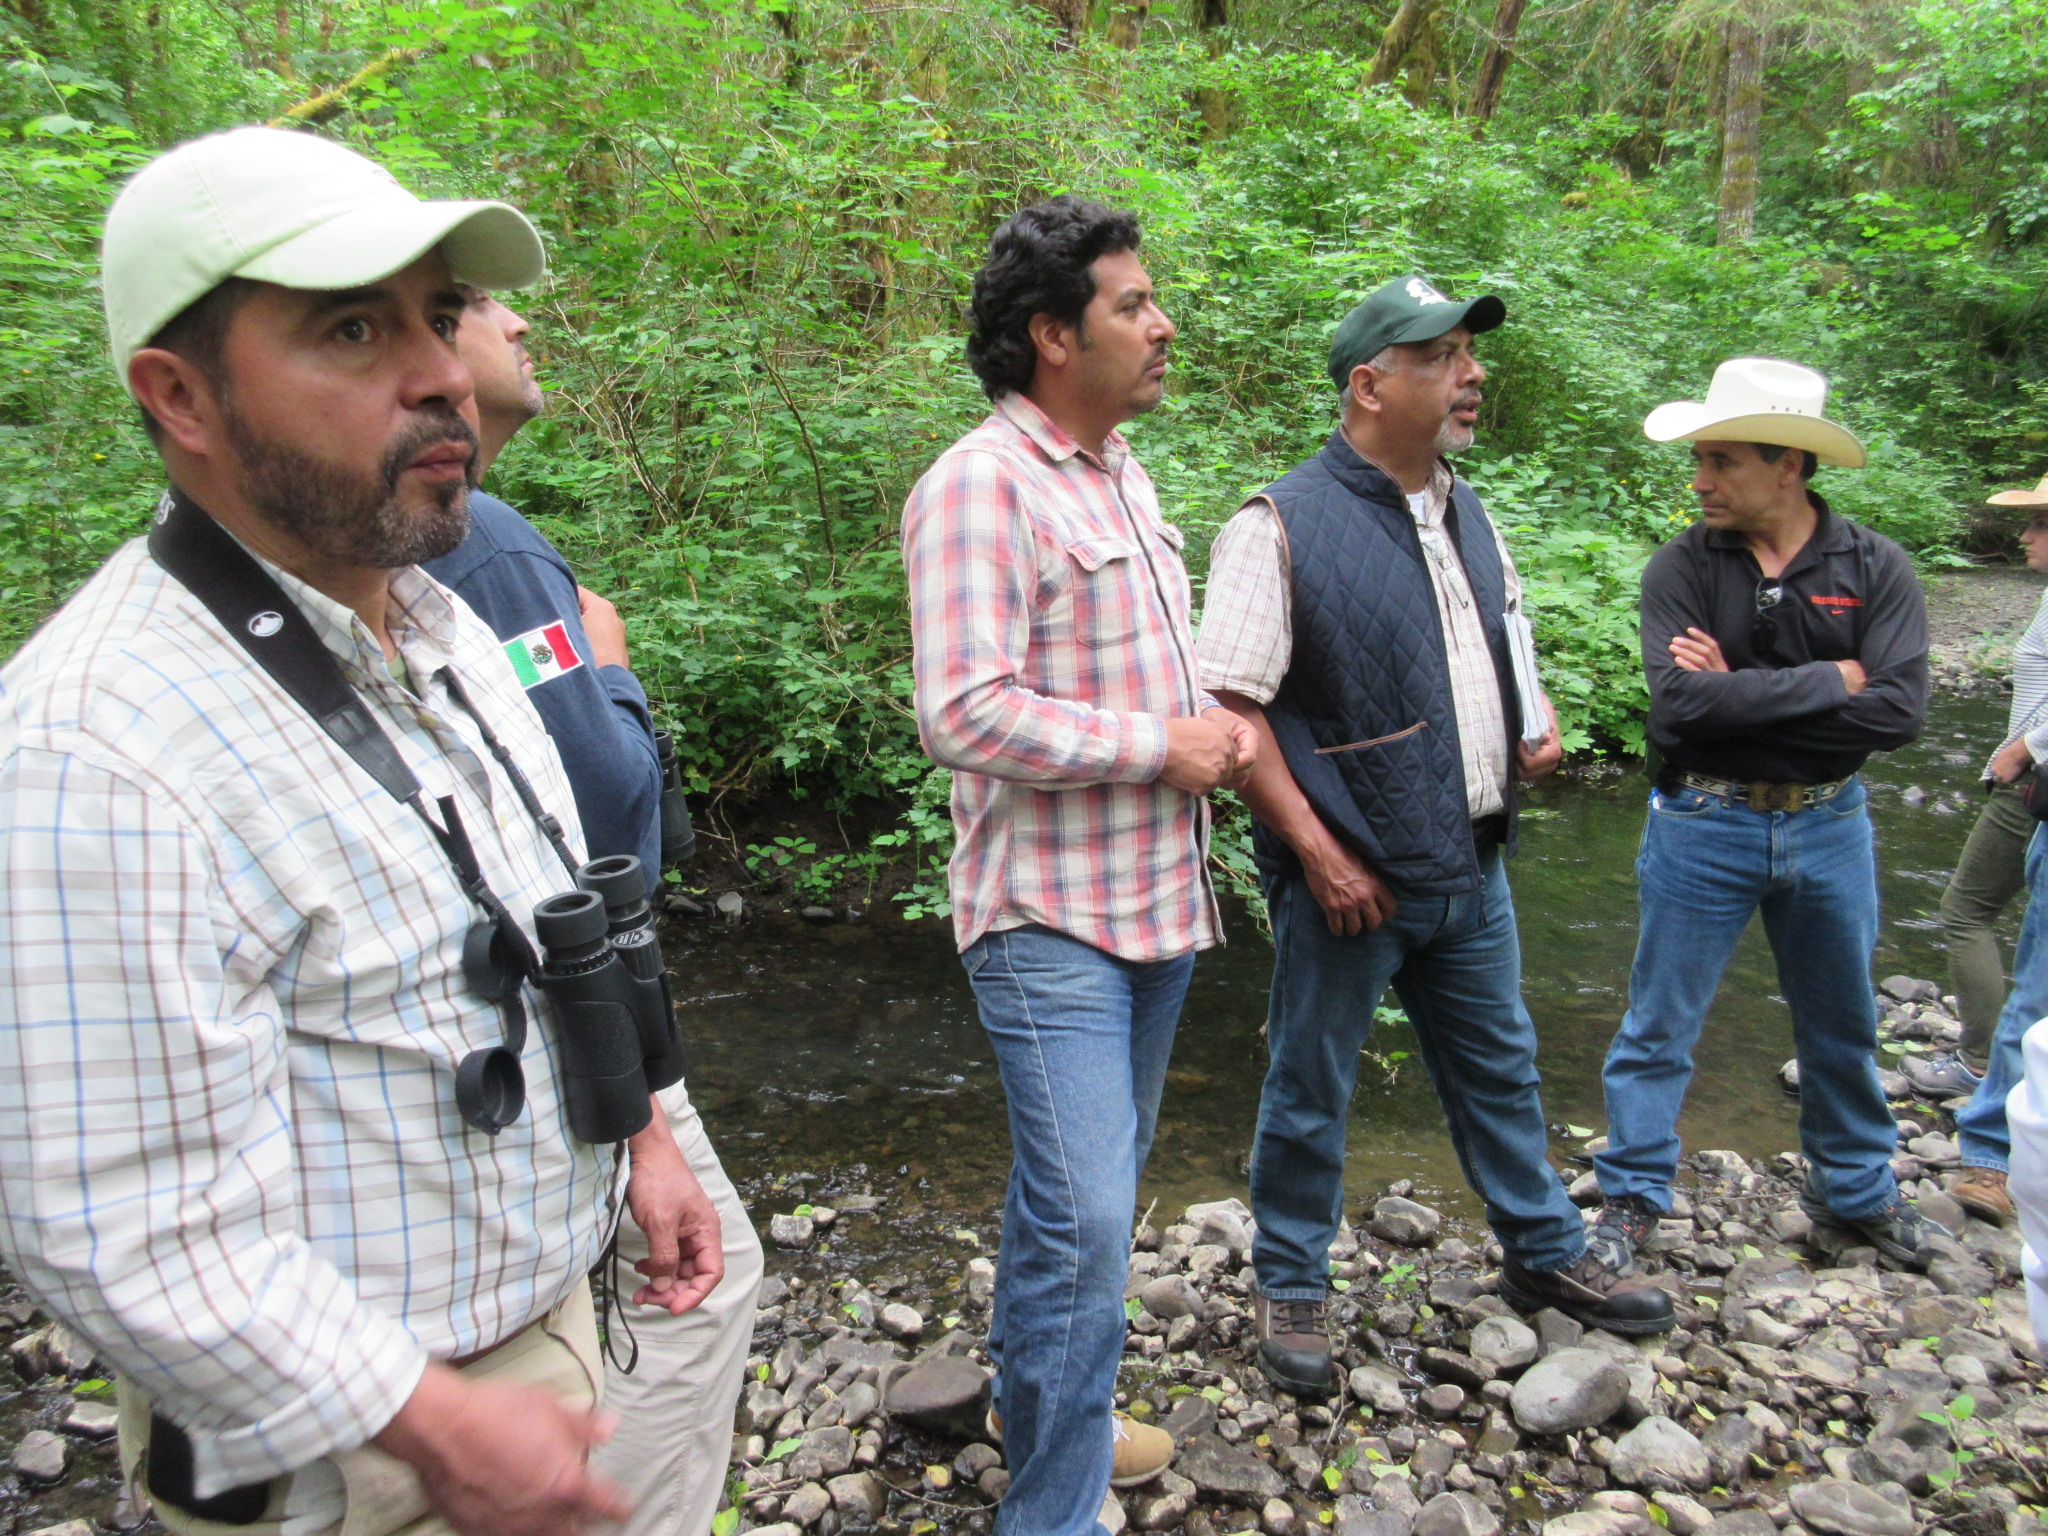 """""""At a time when the public relationship with Mexico is framed in terms of division and exclusion, a project that focuses on building collaborative relationships between conservation professionals from both countries is particularly meaningful.""""  -Allison Hensey, Director of the Willamette River Initiative."""